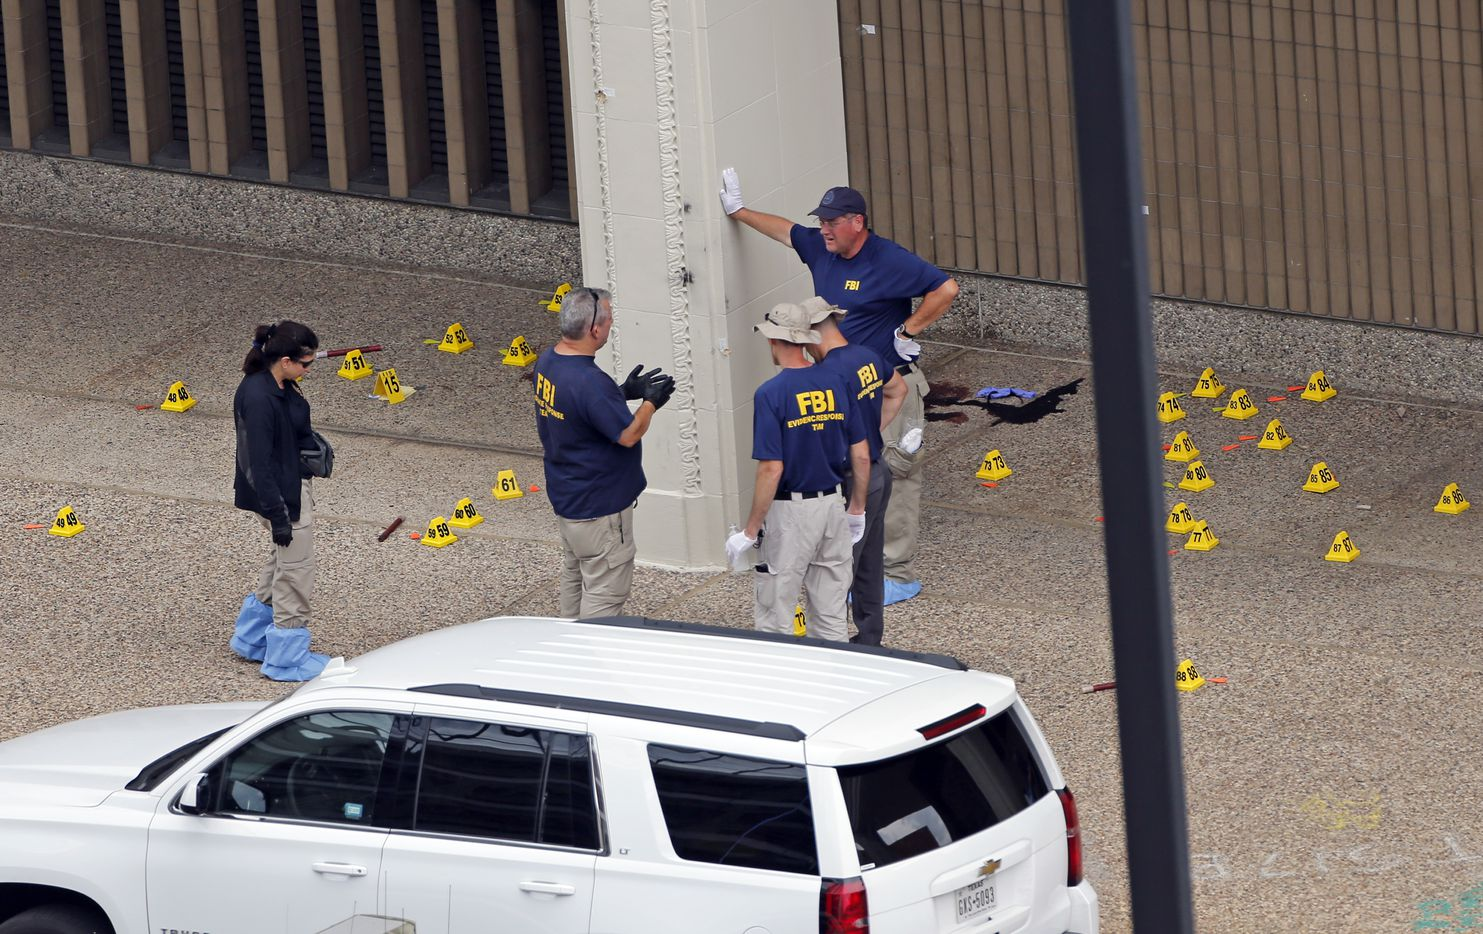 On July 9, two days after the ambush, members of an FBI evidence response team gathered evidence outside El Centro College, where DART Officer Bent Thompson was shot at point-blank range.